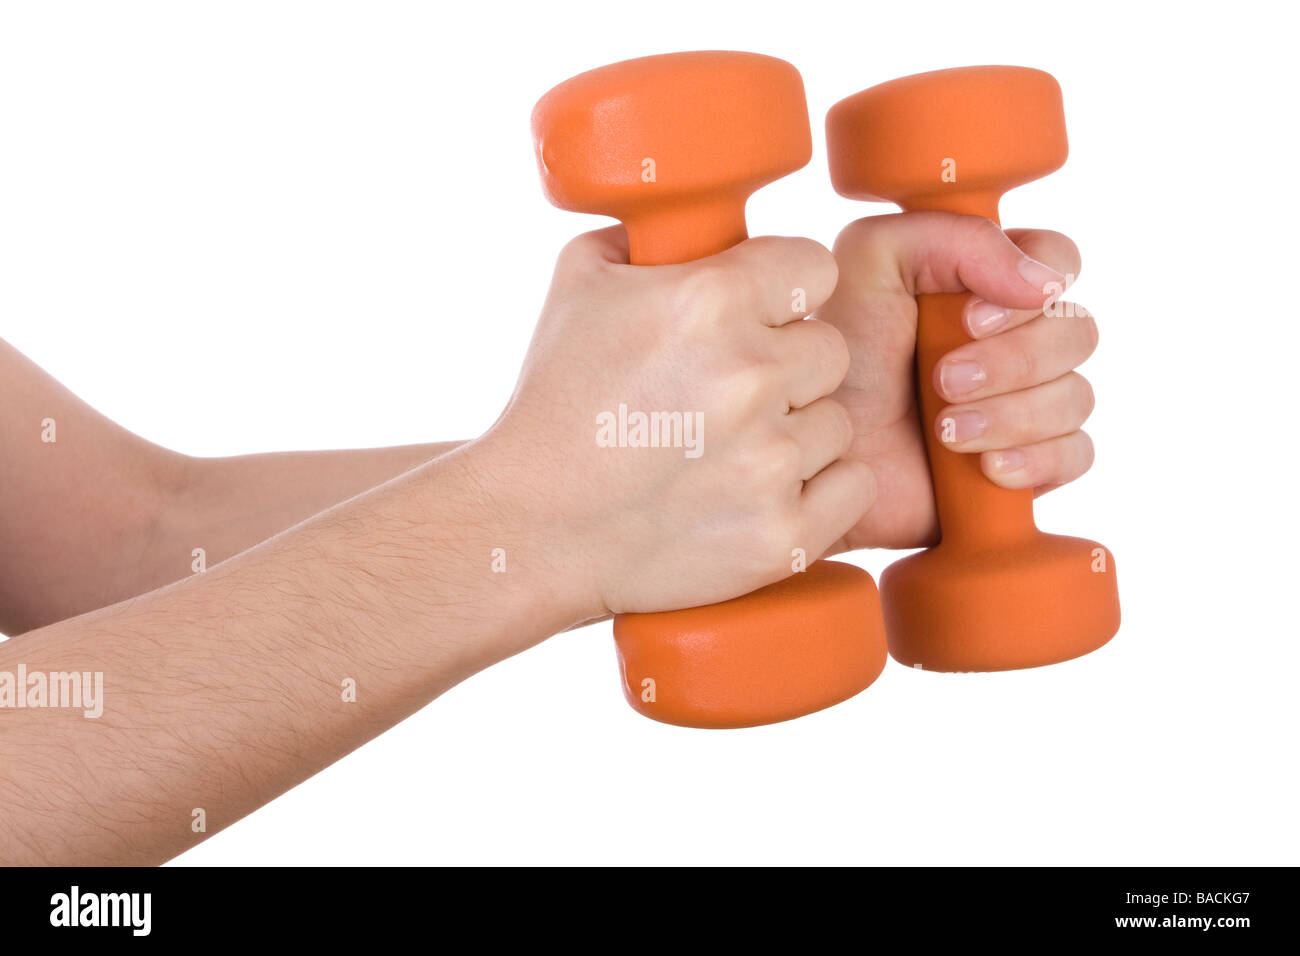 Female hands holding dumbbells isolated on white background - Stock Image